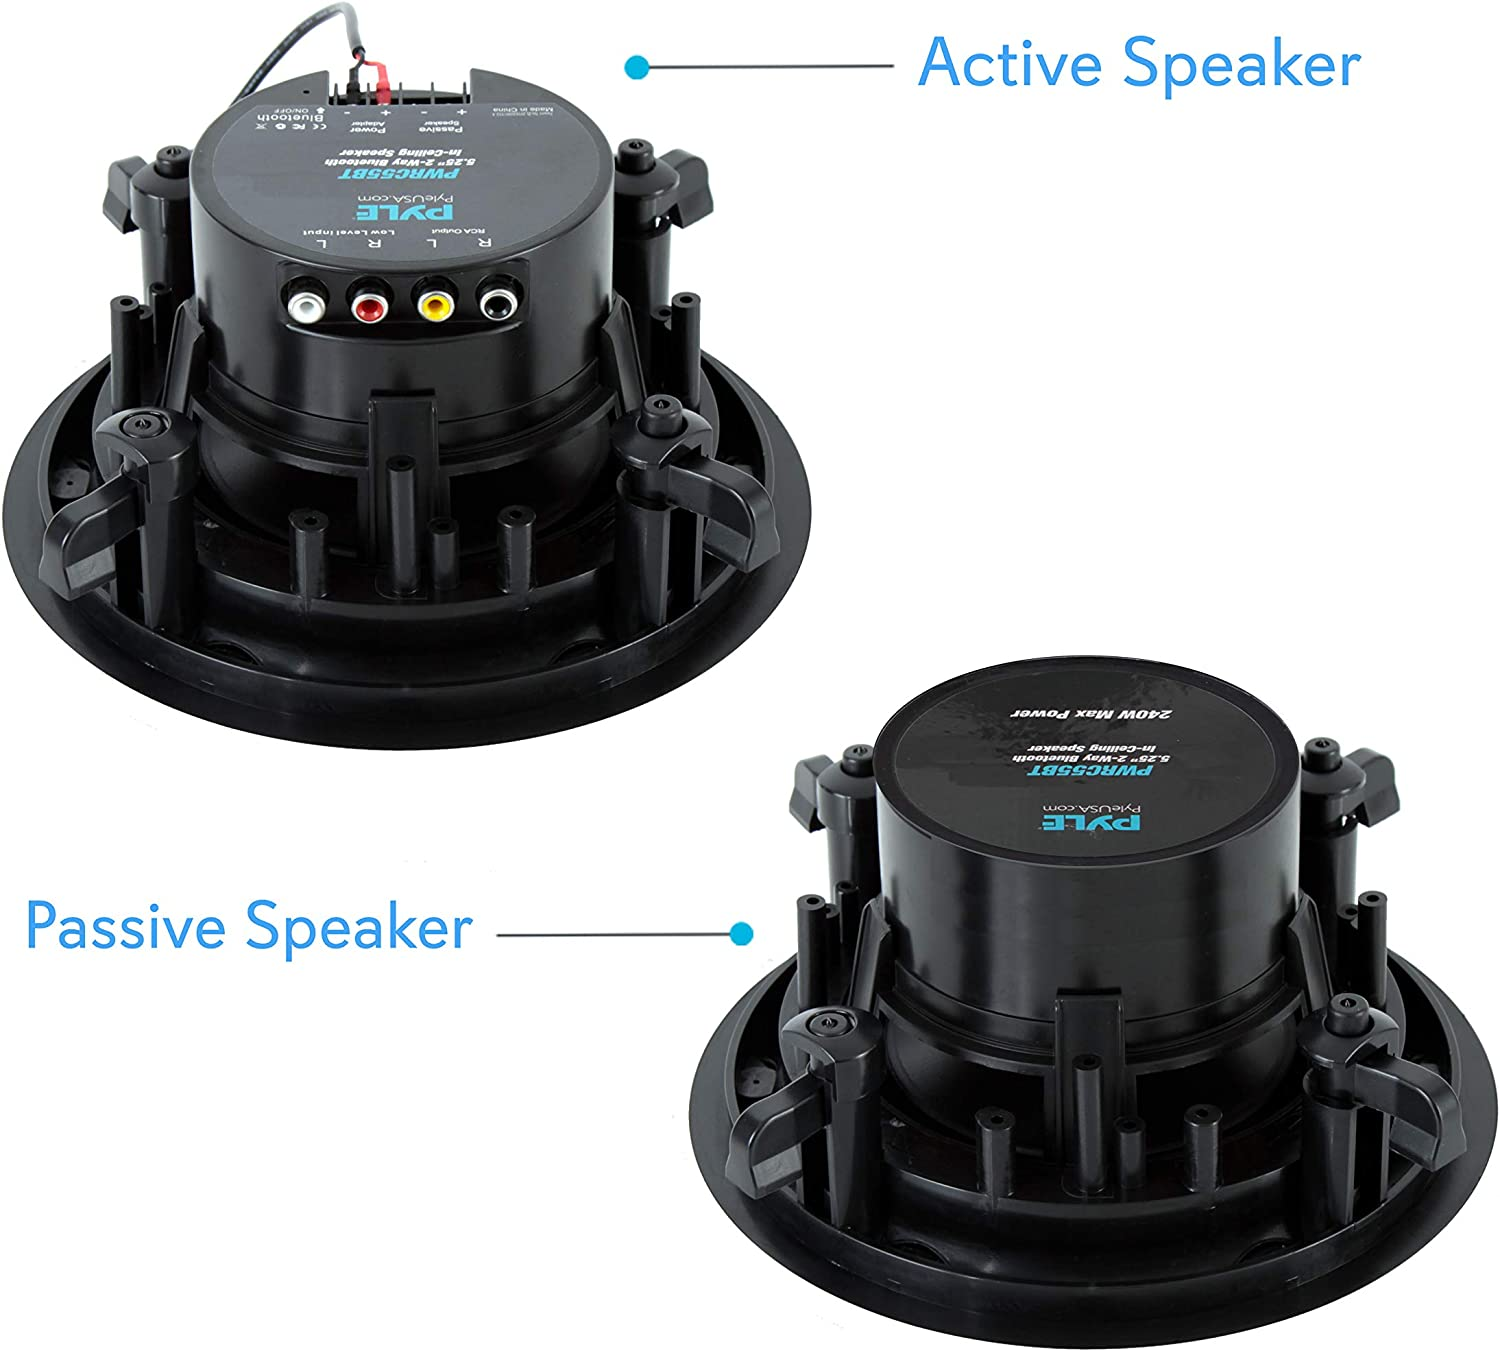 active-speaker-and-passive-speaker-with-built-in-subwoofer